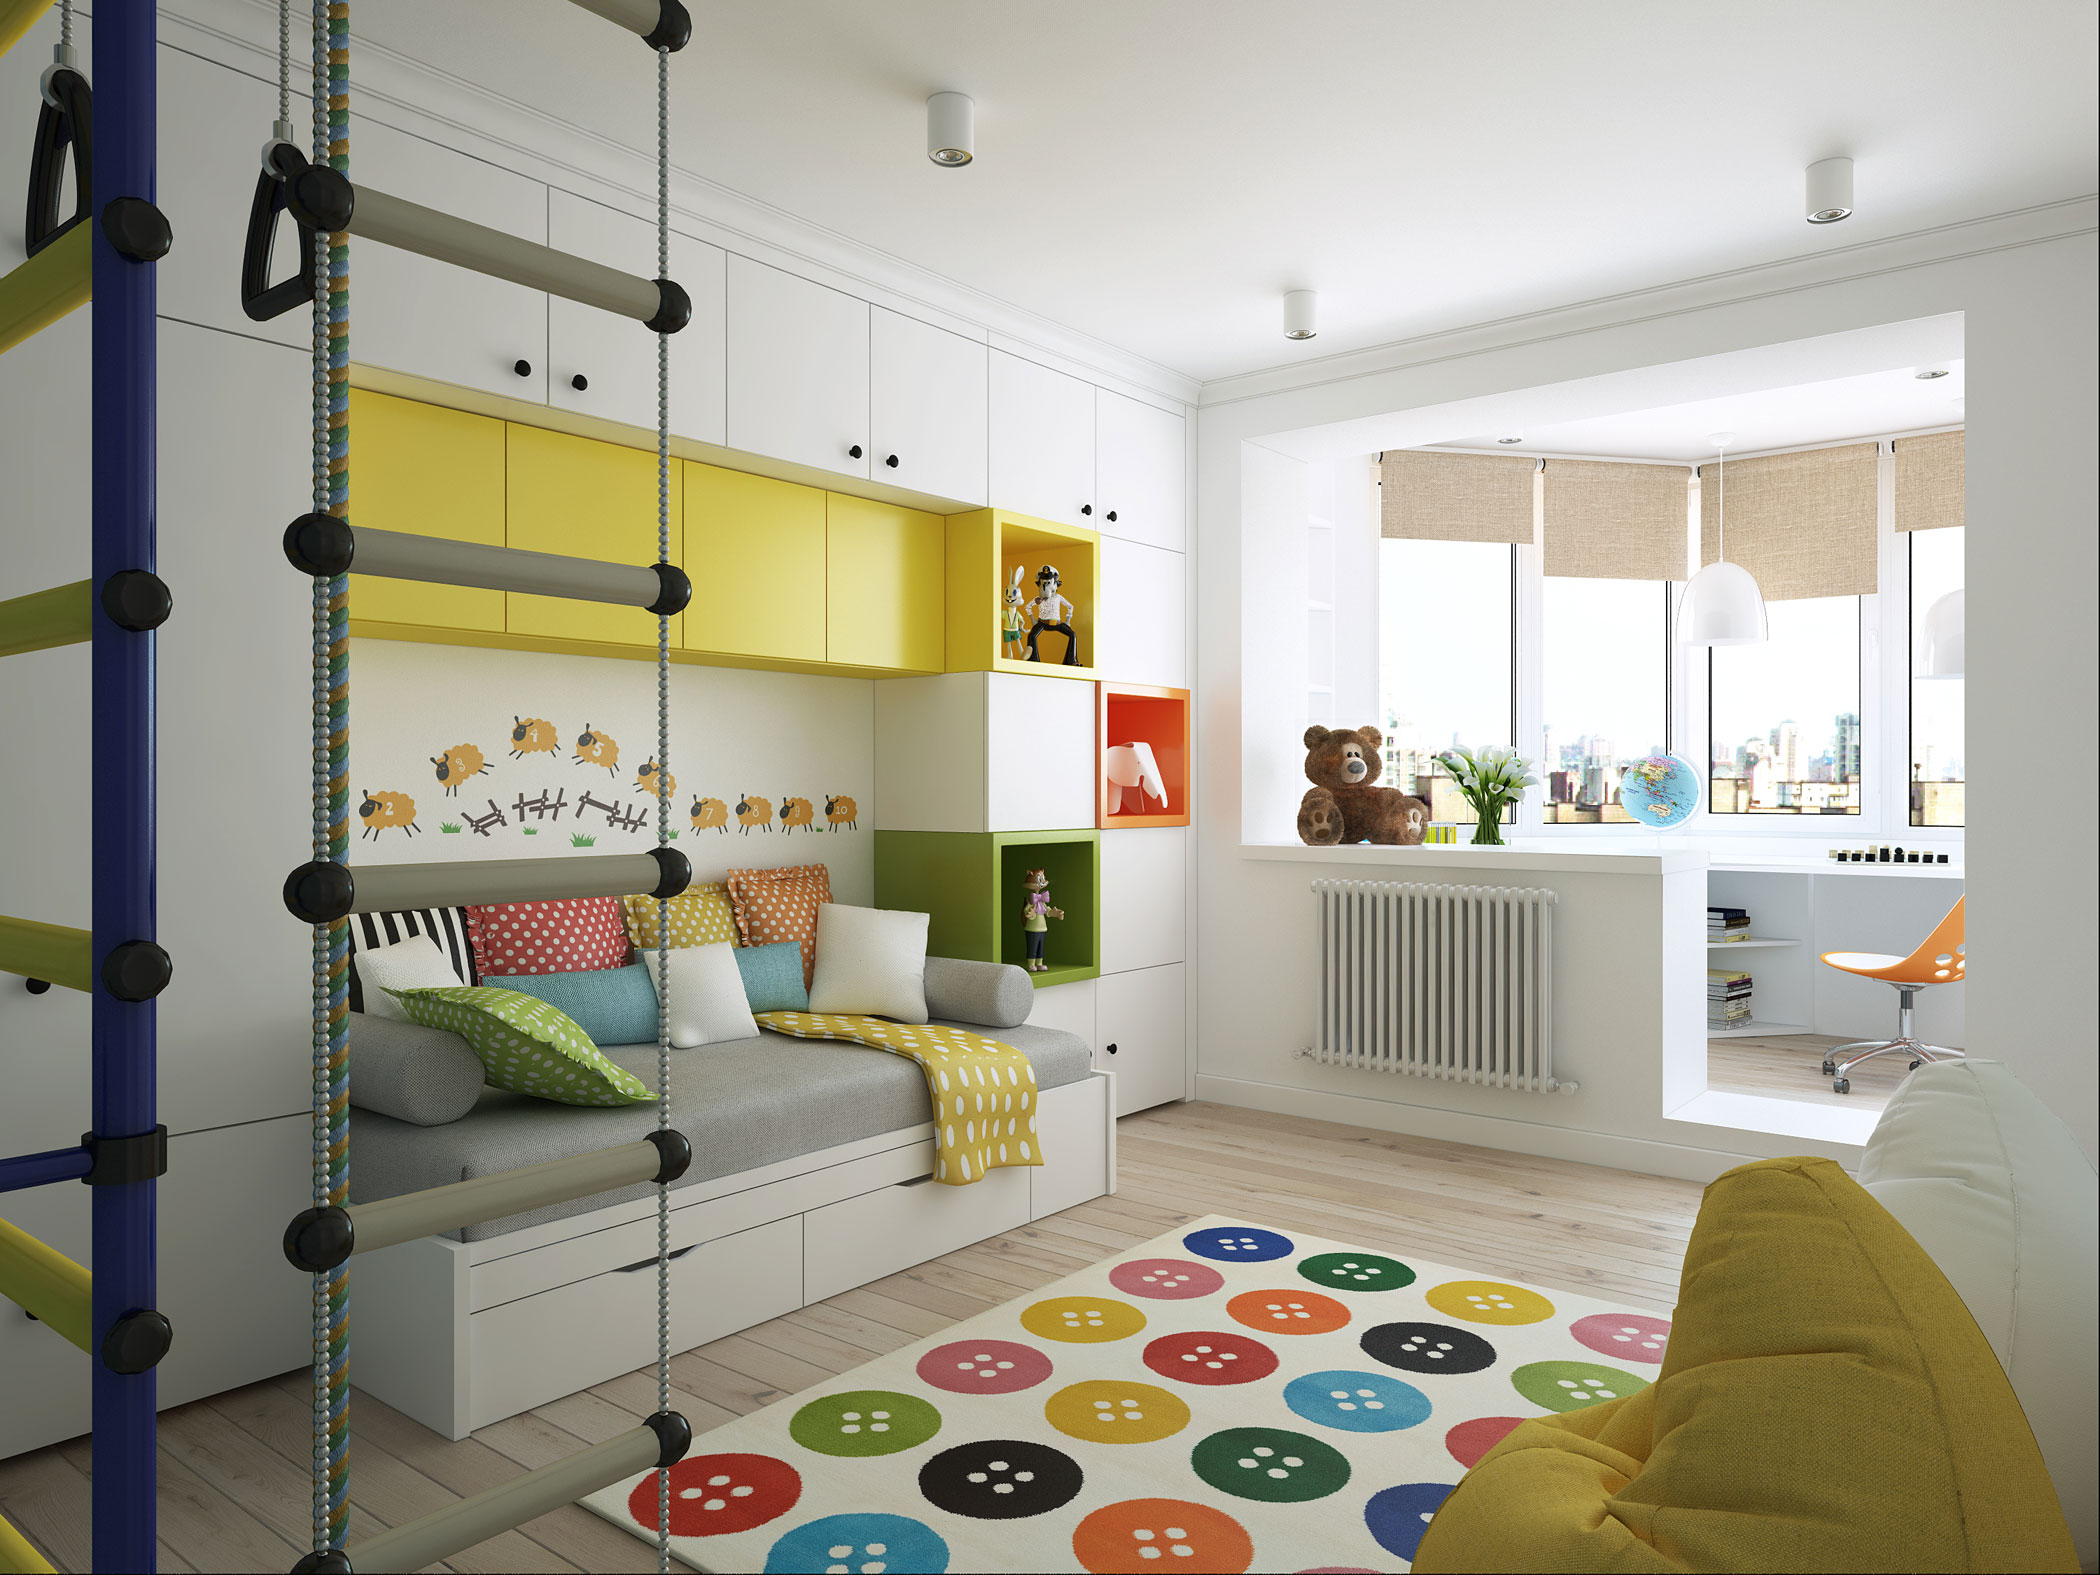 Contemporary Apartment in Moscow Visualized by Geometrium-13